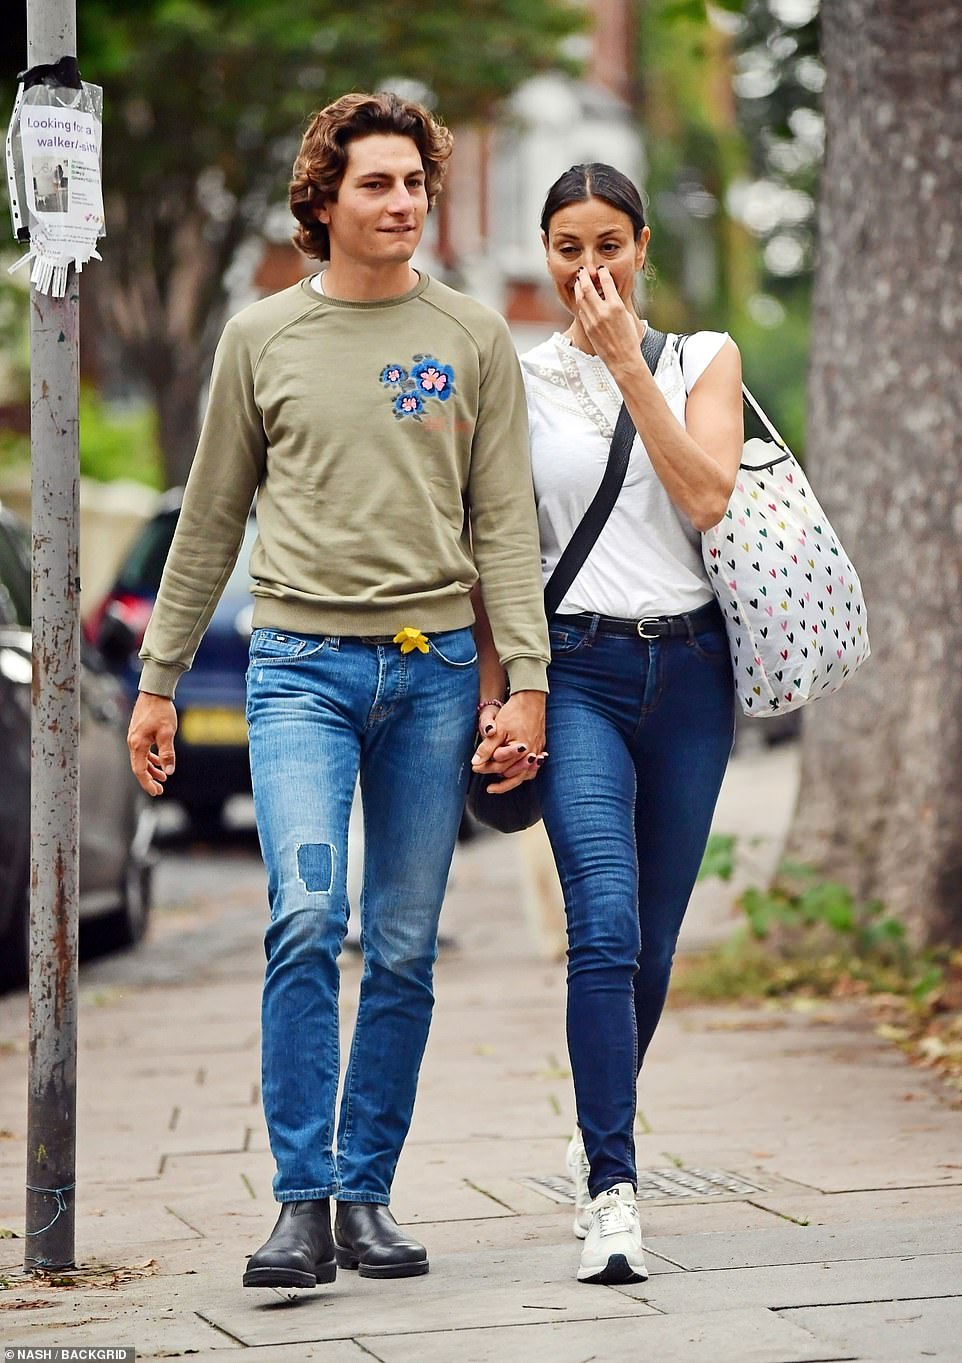 Casual: Riccardo wore jeans, an olive-hued sweatshirt which had flowers embroidered onto the chest on one side